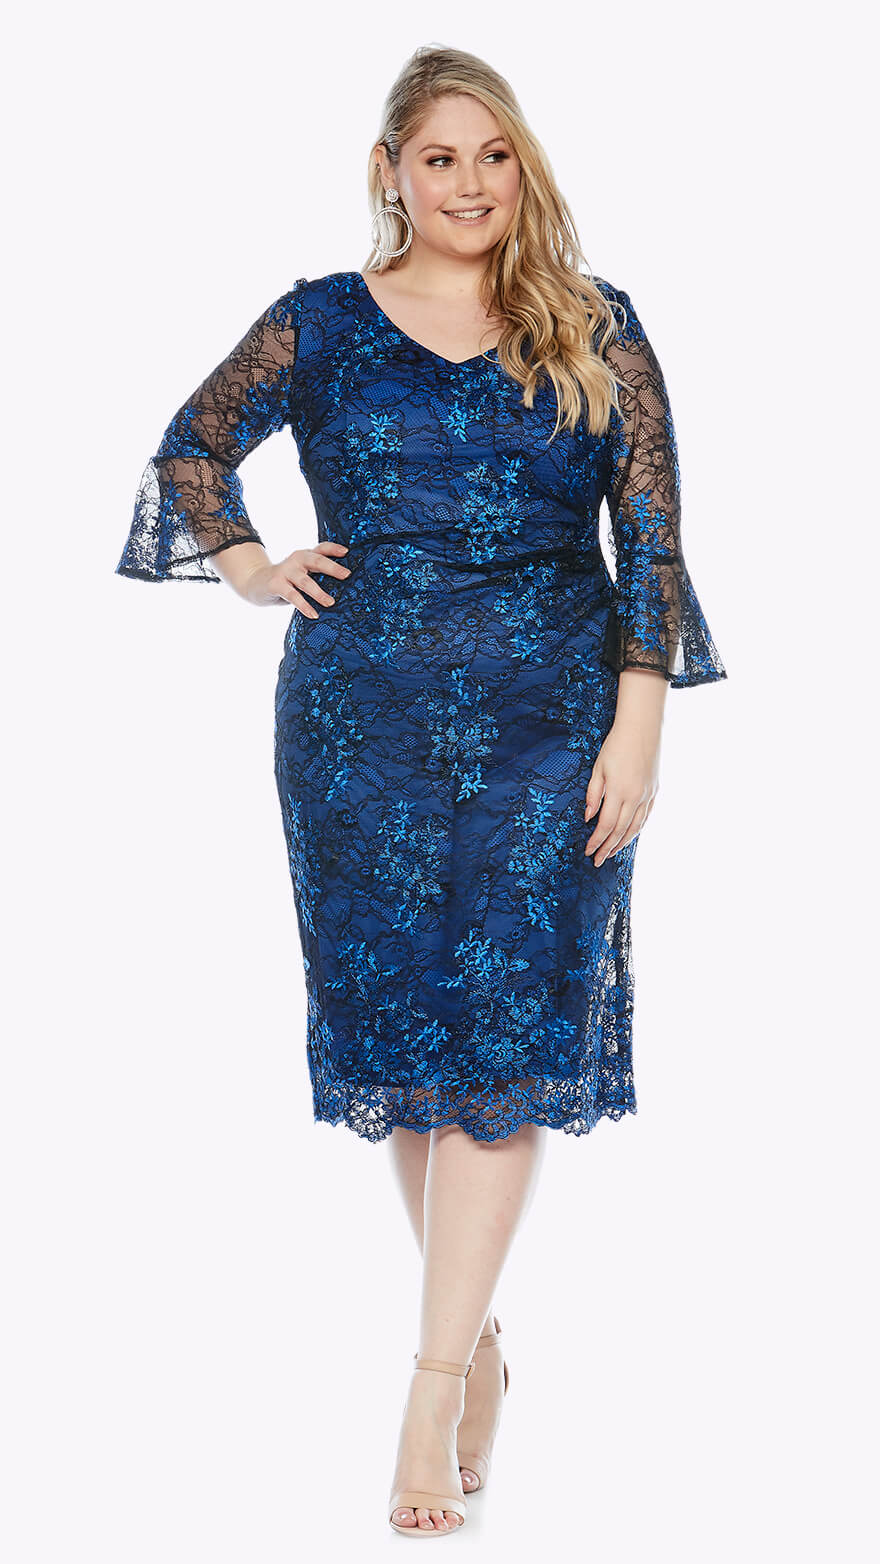 LJ0354 Knee-length lace dress with beautiful bell sleeves and ruched waist